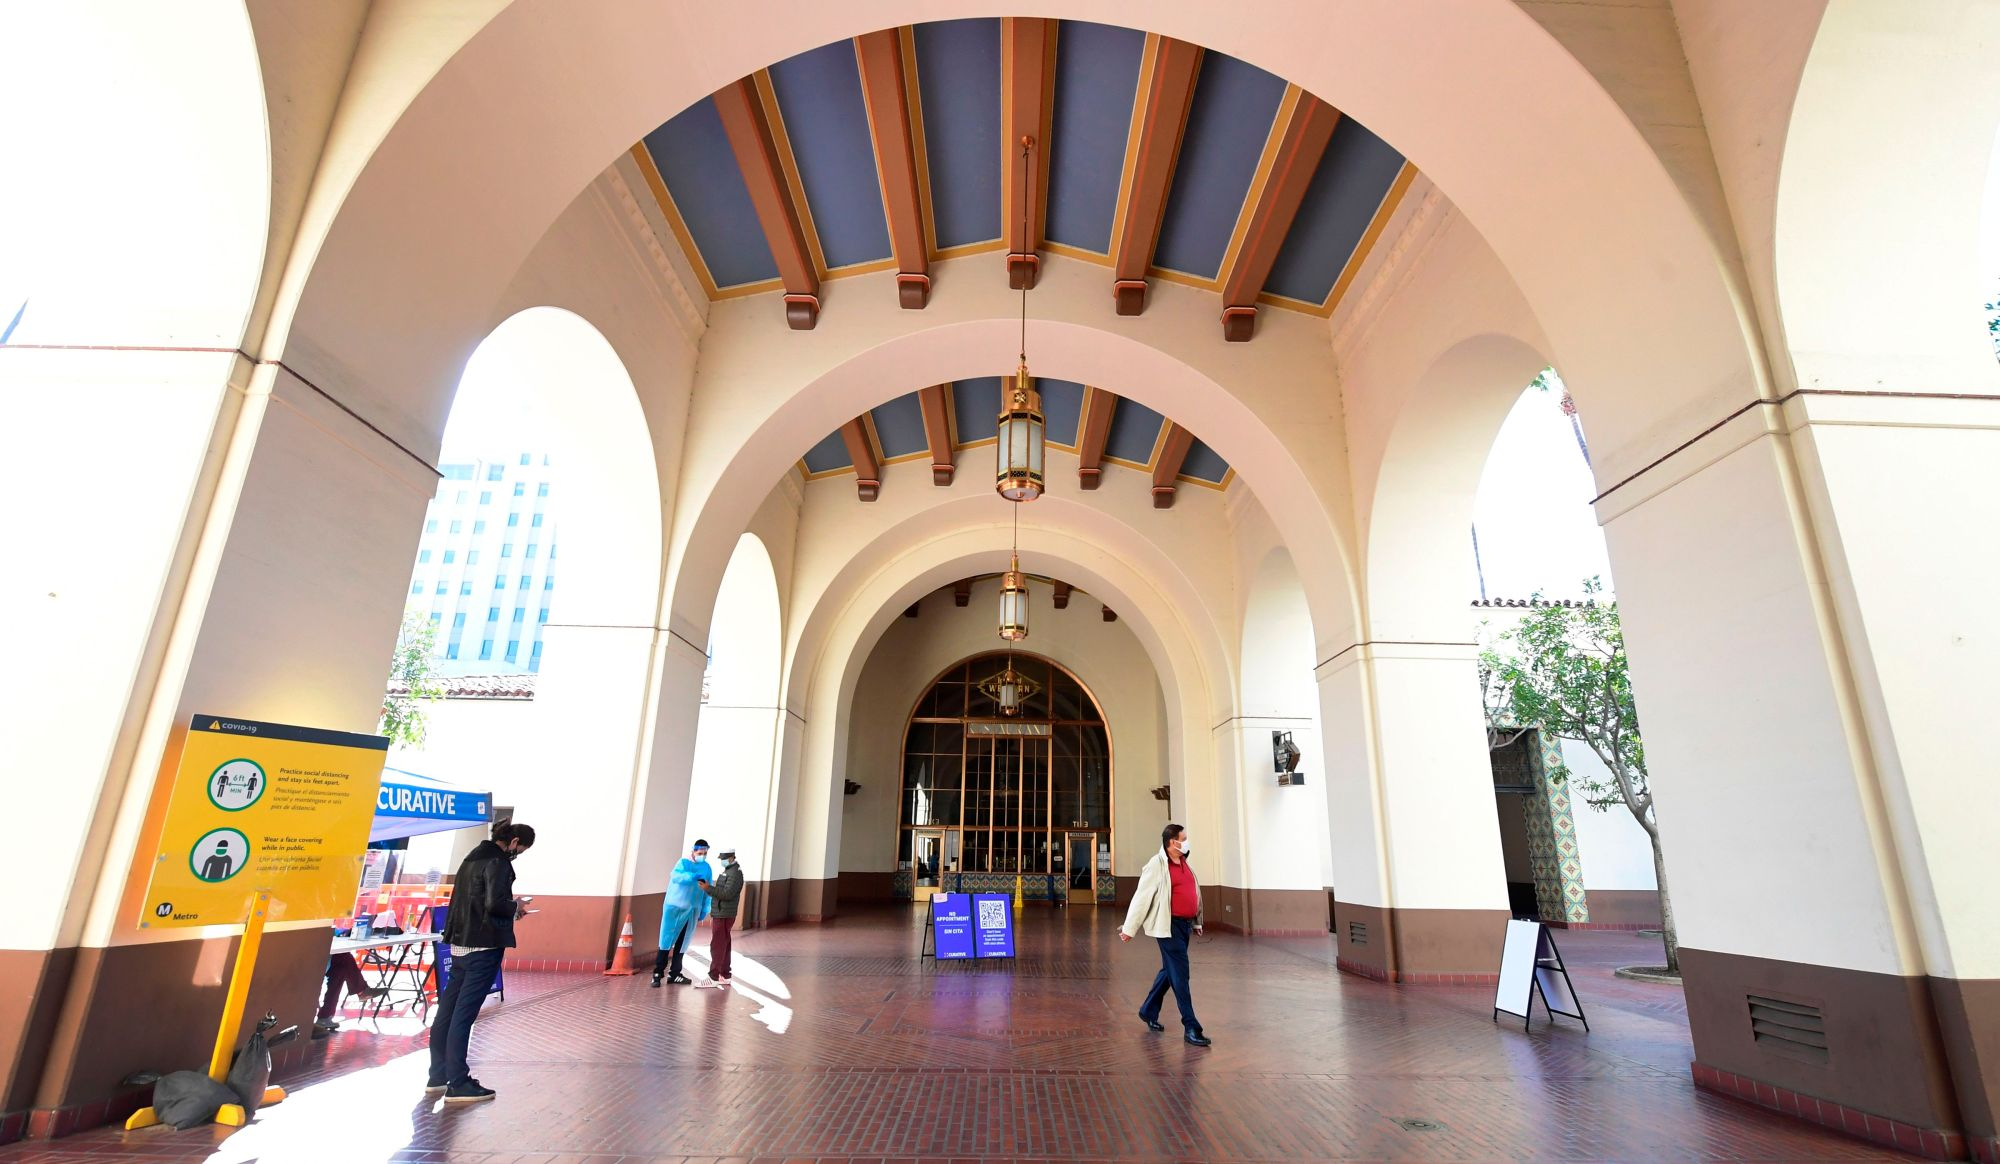 Testing Center Specialists fully dressed in personal protective equipment assist people arriving for a coronavirus test at Union Station in Los Angeles on Nov. 13, 2020. (FREDERIC J. BROWN/AFP via Getty Images)